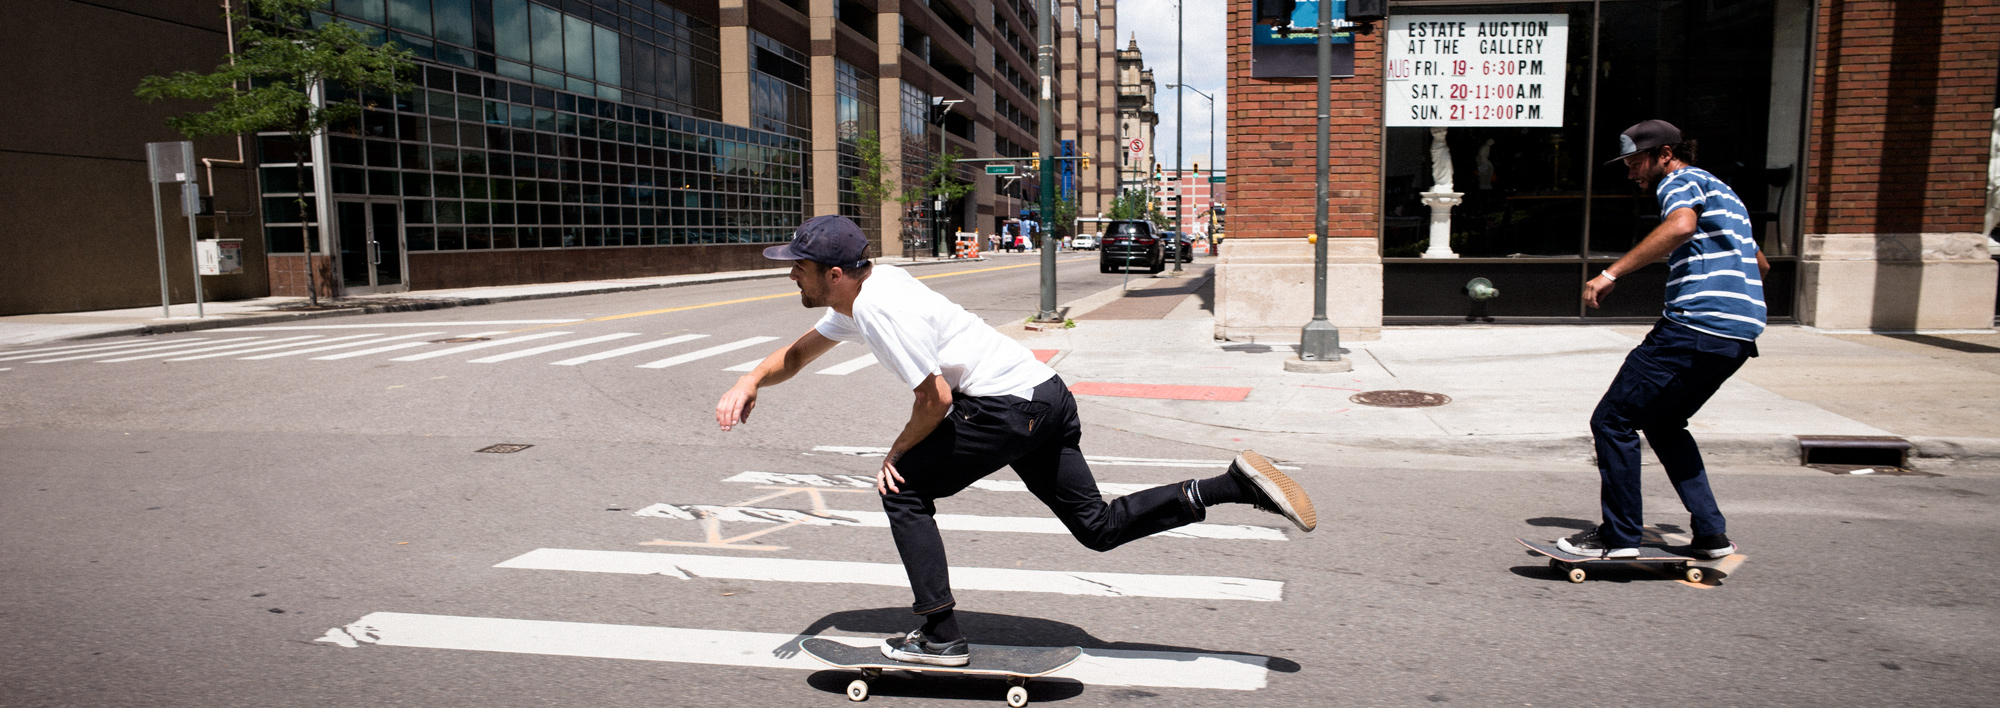 "skateboarder dating website ""he took a skateboard and we met people on a bus and watched a movie at someone's house site index the new york times site index navigation news."